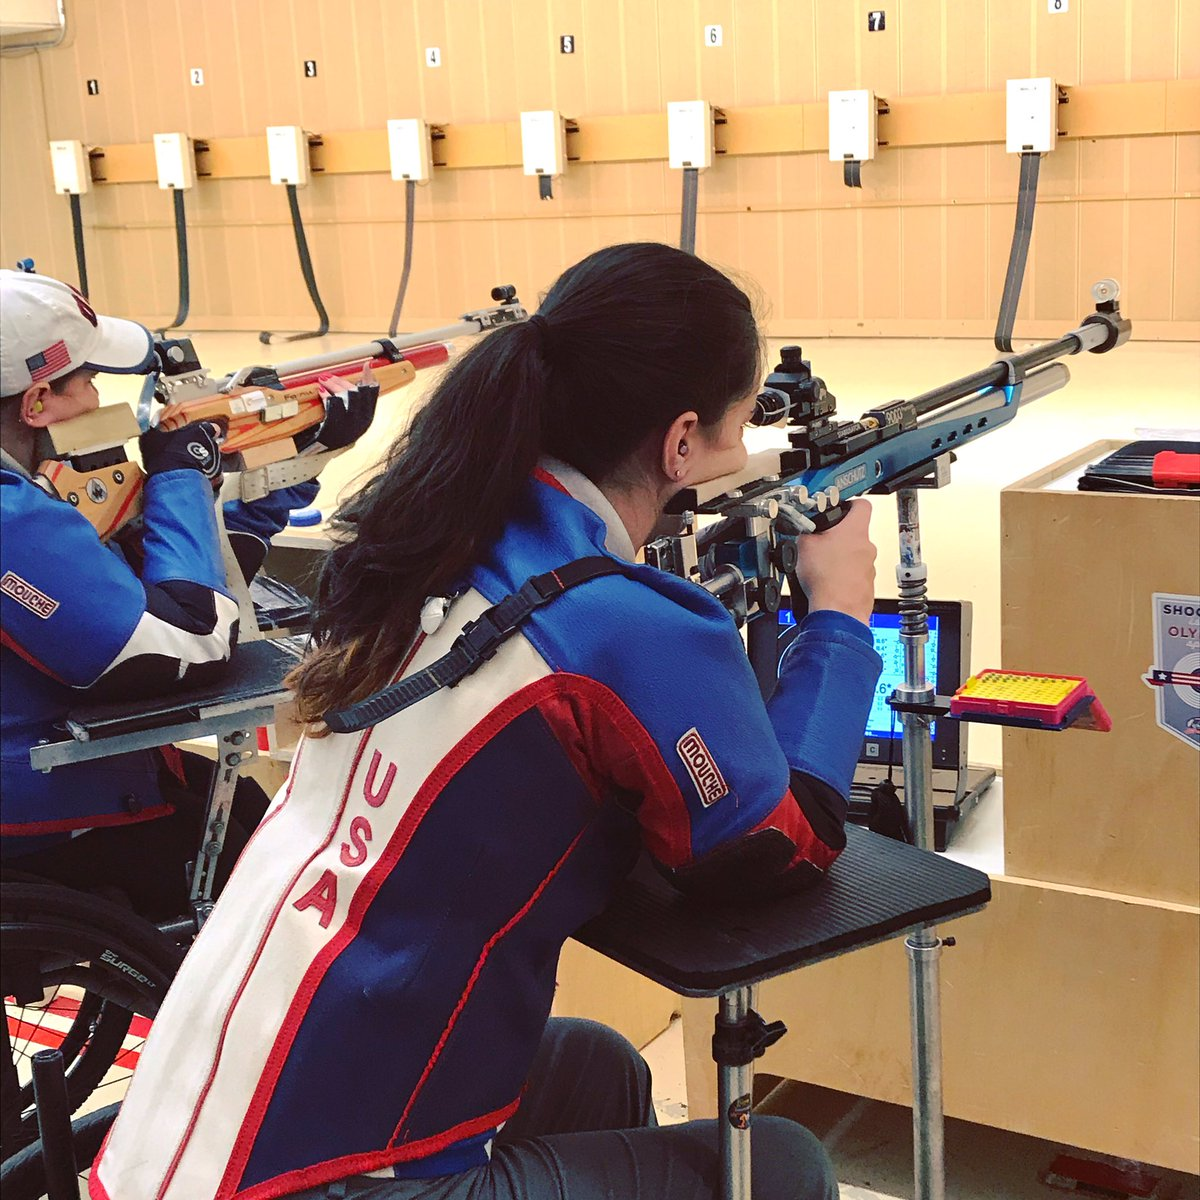 This last week I have spent countless hours on the range with my teammates during this month's Paralympic camp. I've made position changes, learned about upcoming changes within our program, and buckled down for our upcoming Selection Match. #GoBigOrGoHome #RiseAndGrind<br>http://pic.twitter.com/vI80bo67fh